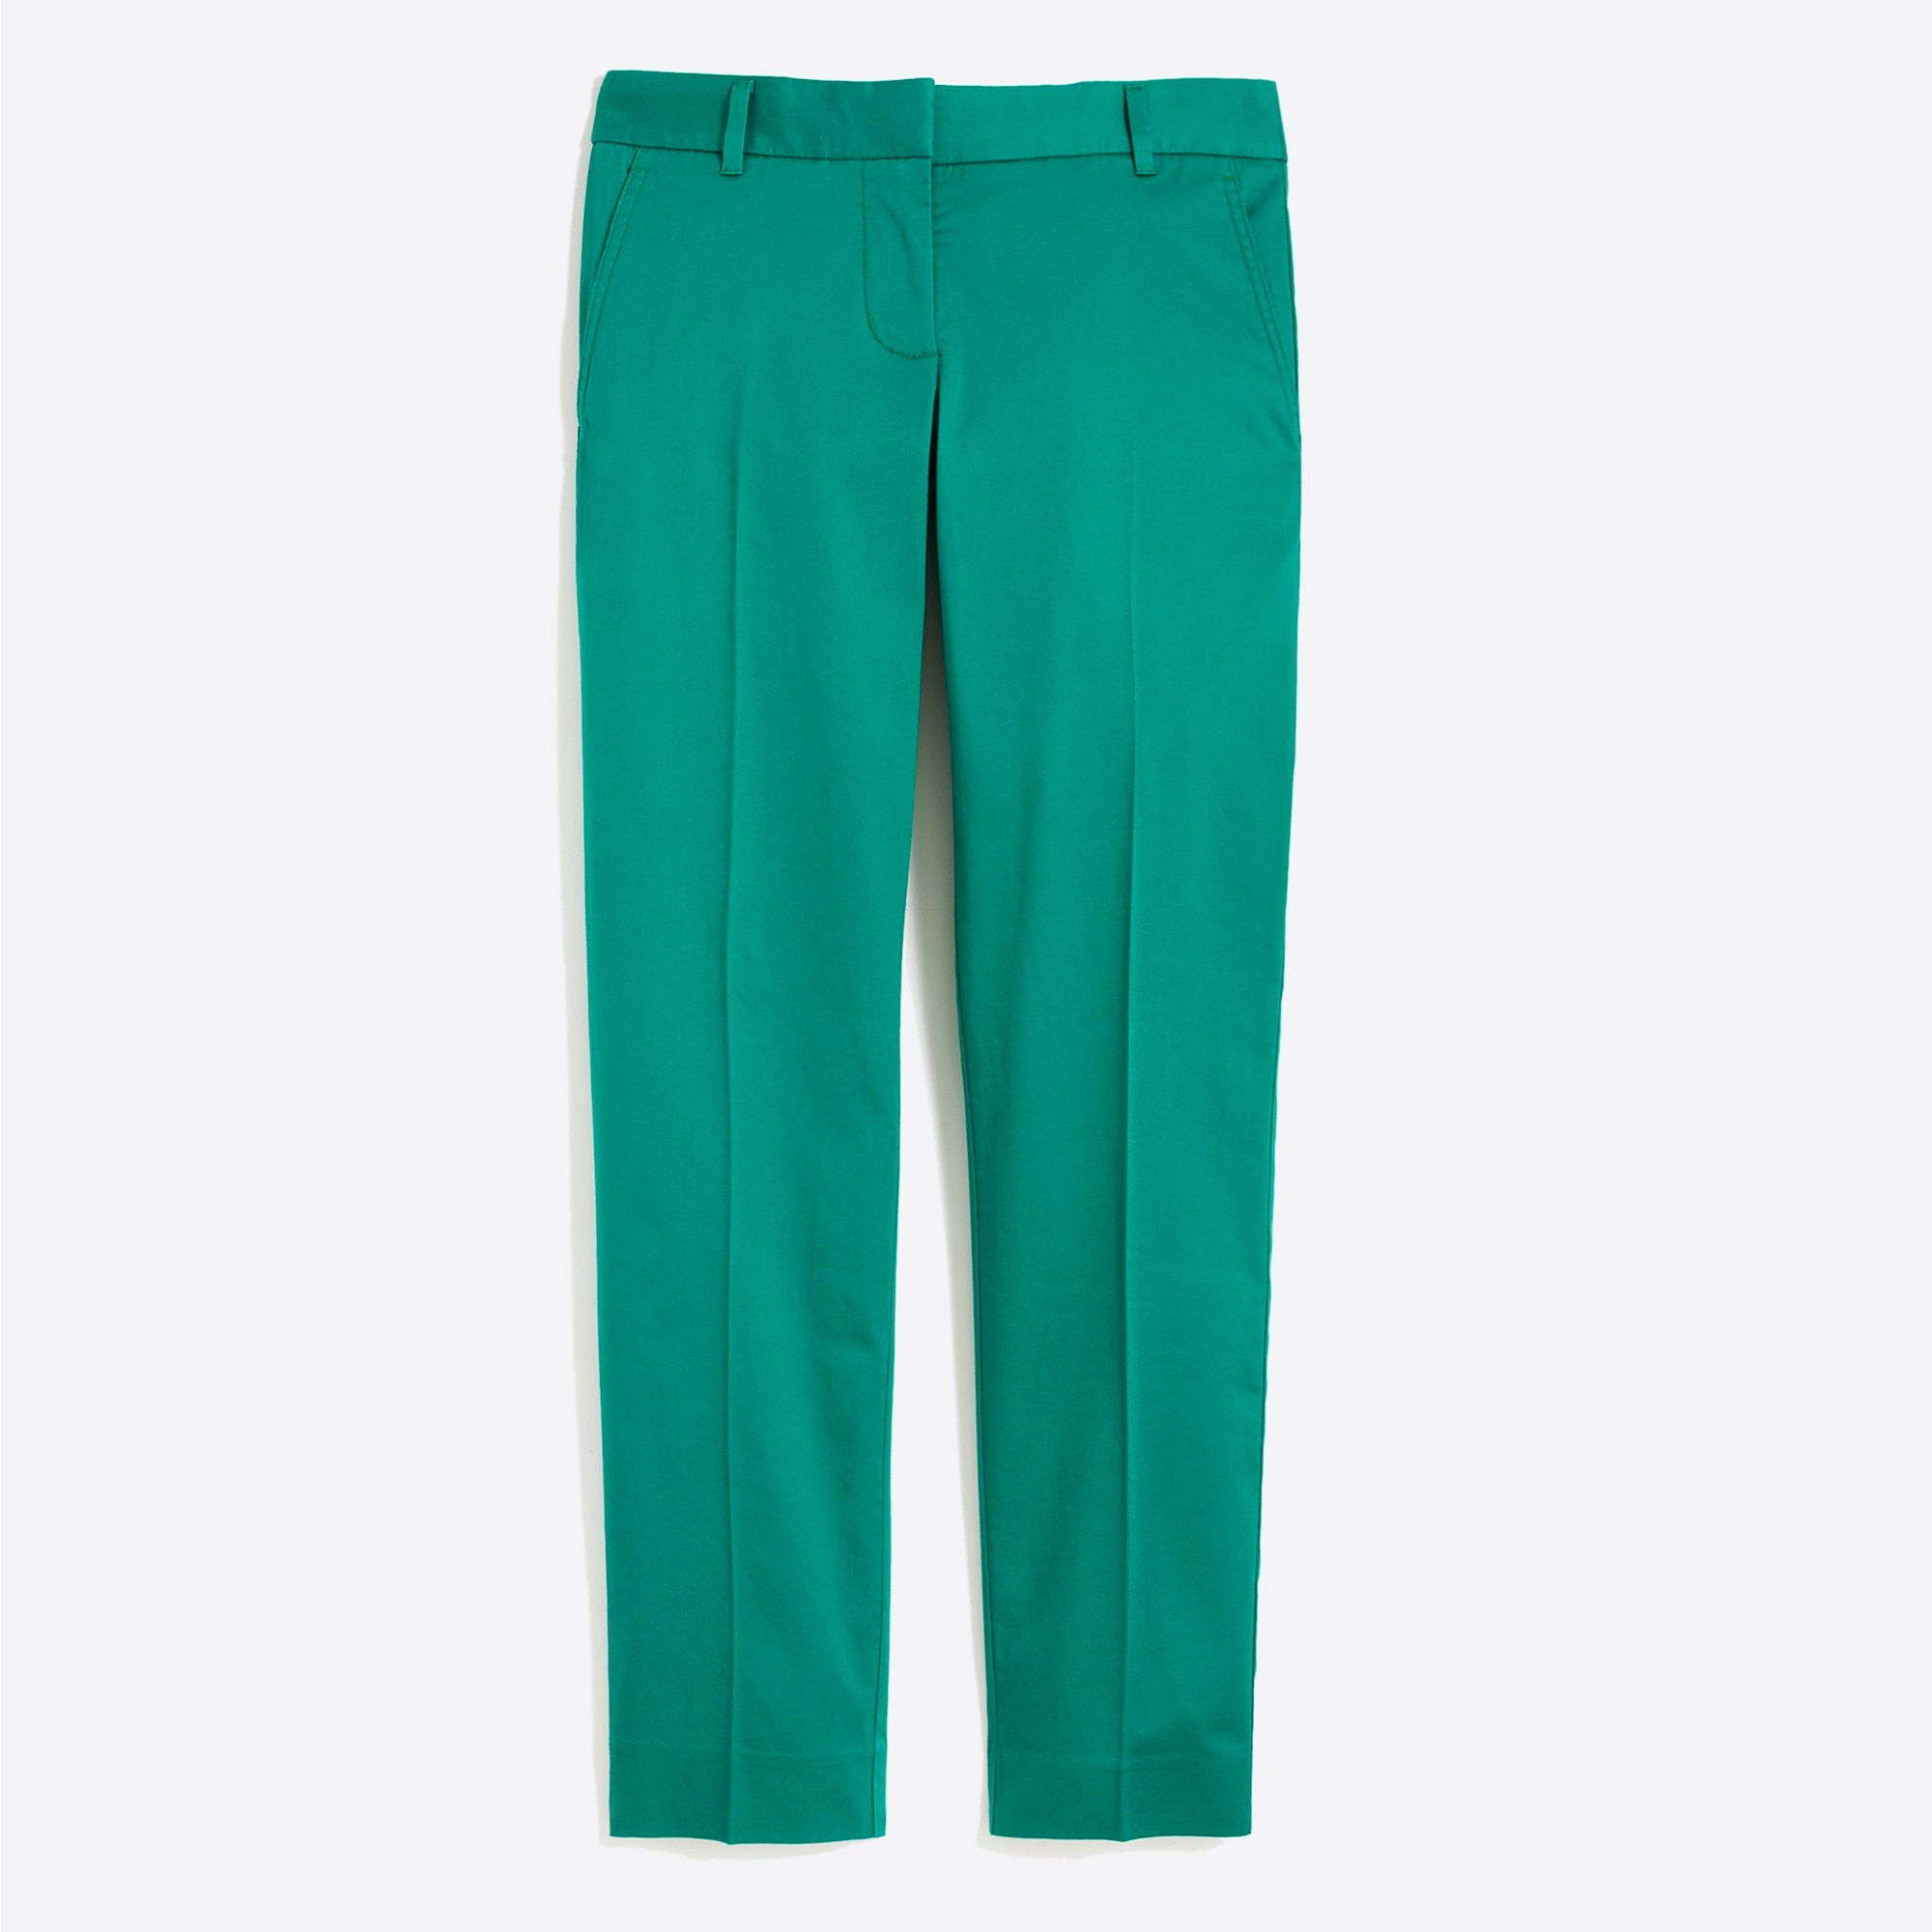 skimmer pant : women's pants